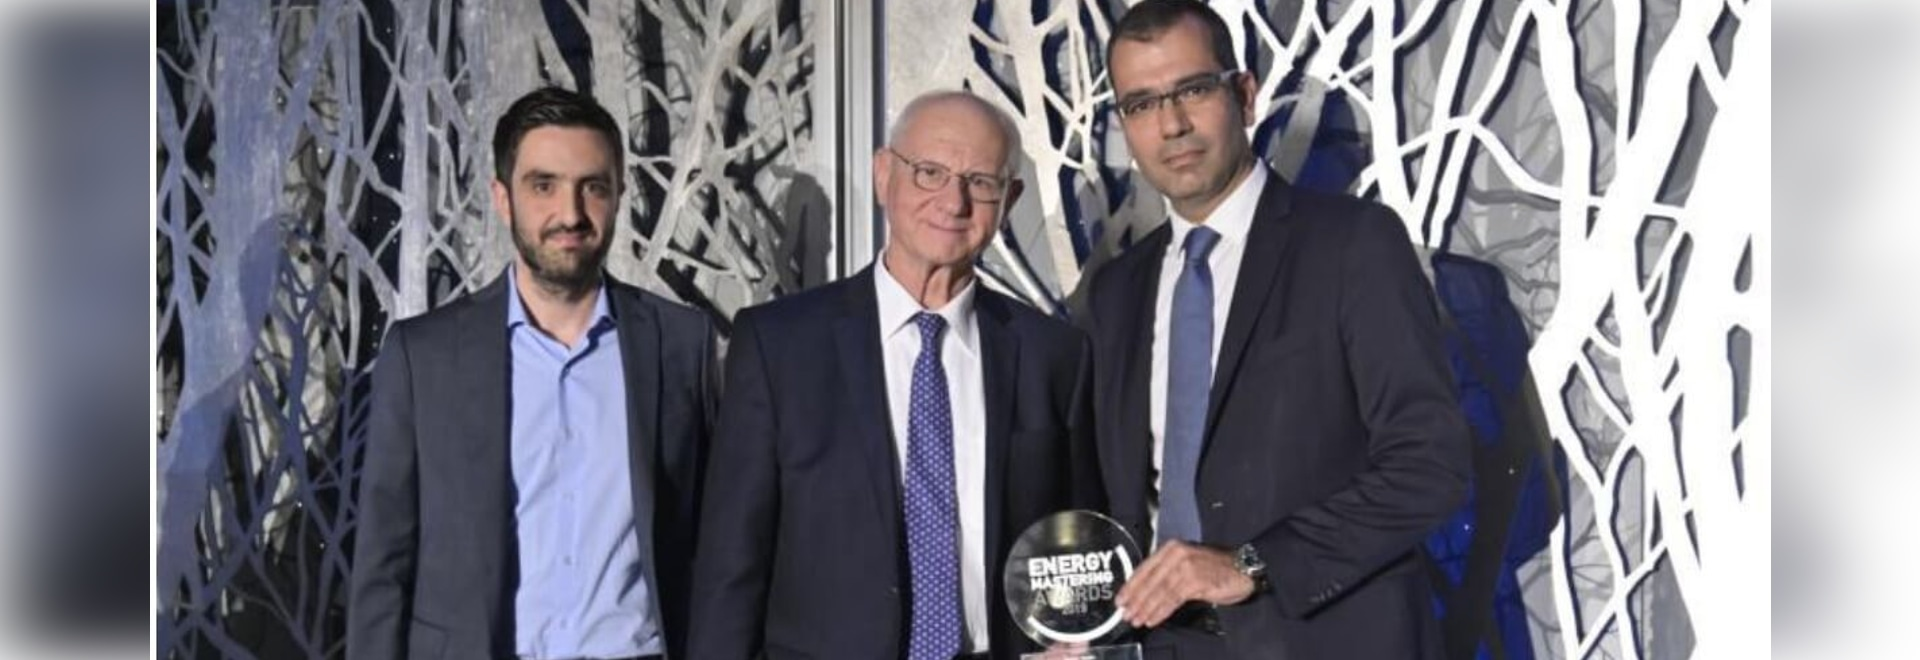 ISOMAT was awarded for the significant energy efficiency of its facilities at the Energy Mastering Awards 2019